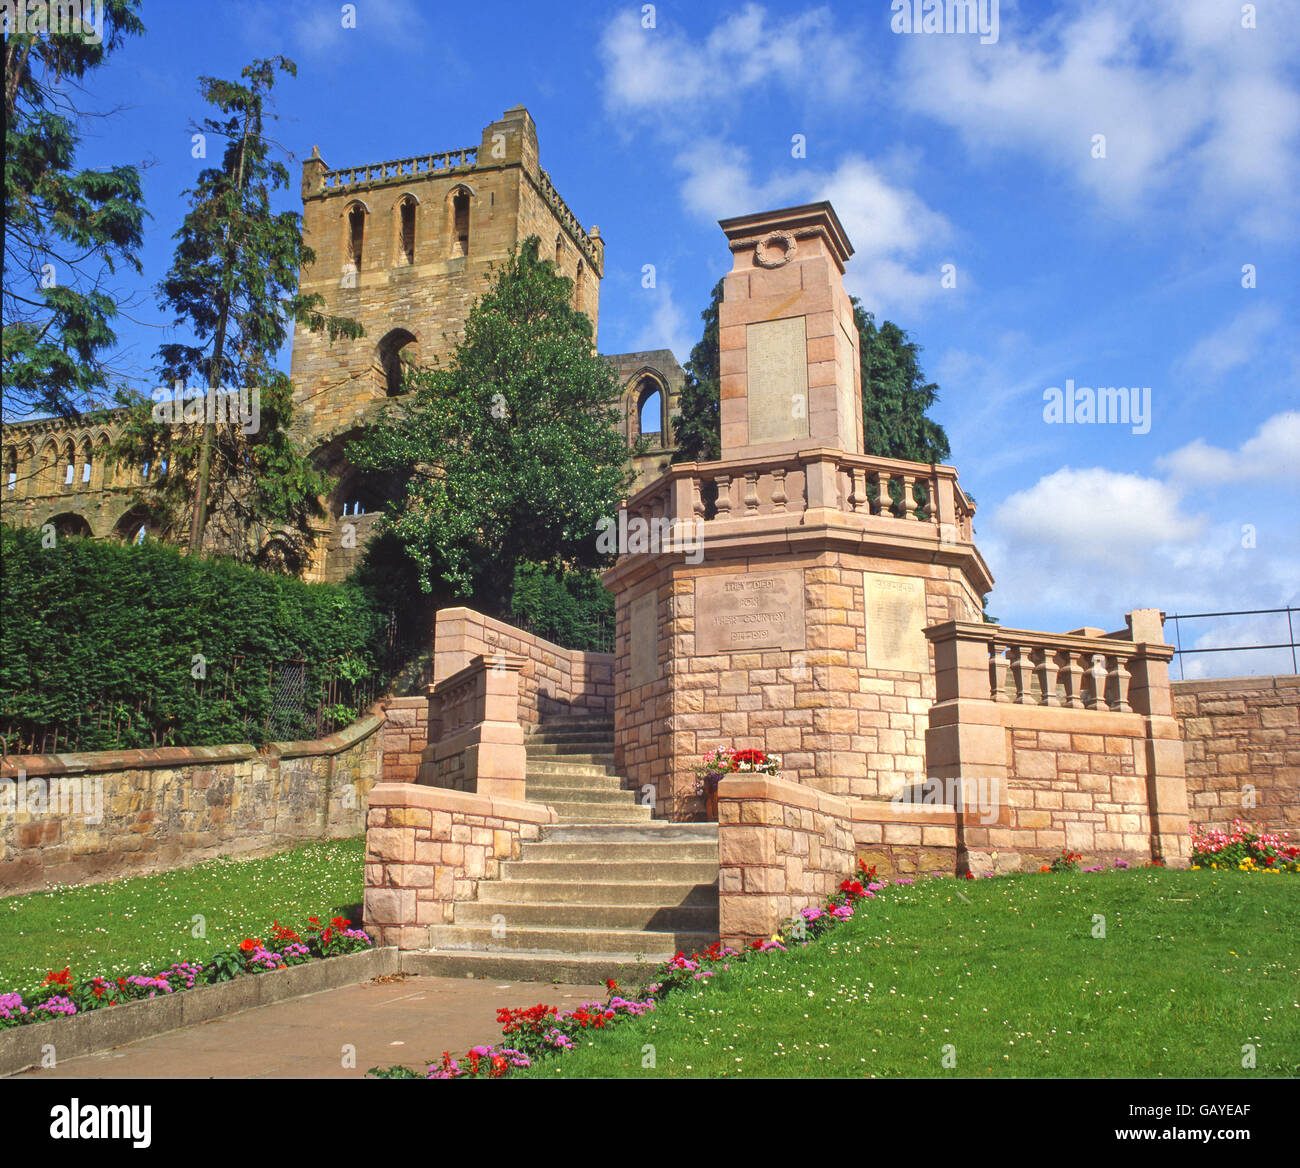 Jedburgh Abbey, Scottish Borders, Scotland - Stock Image